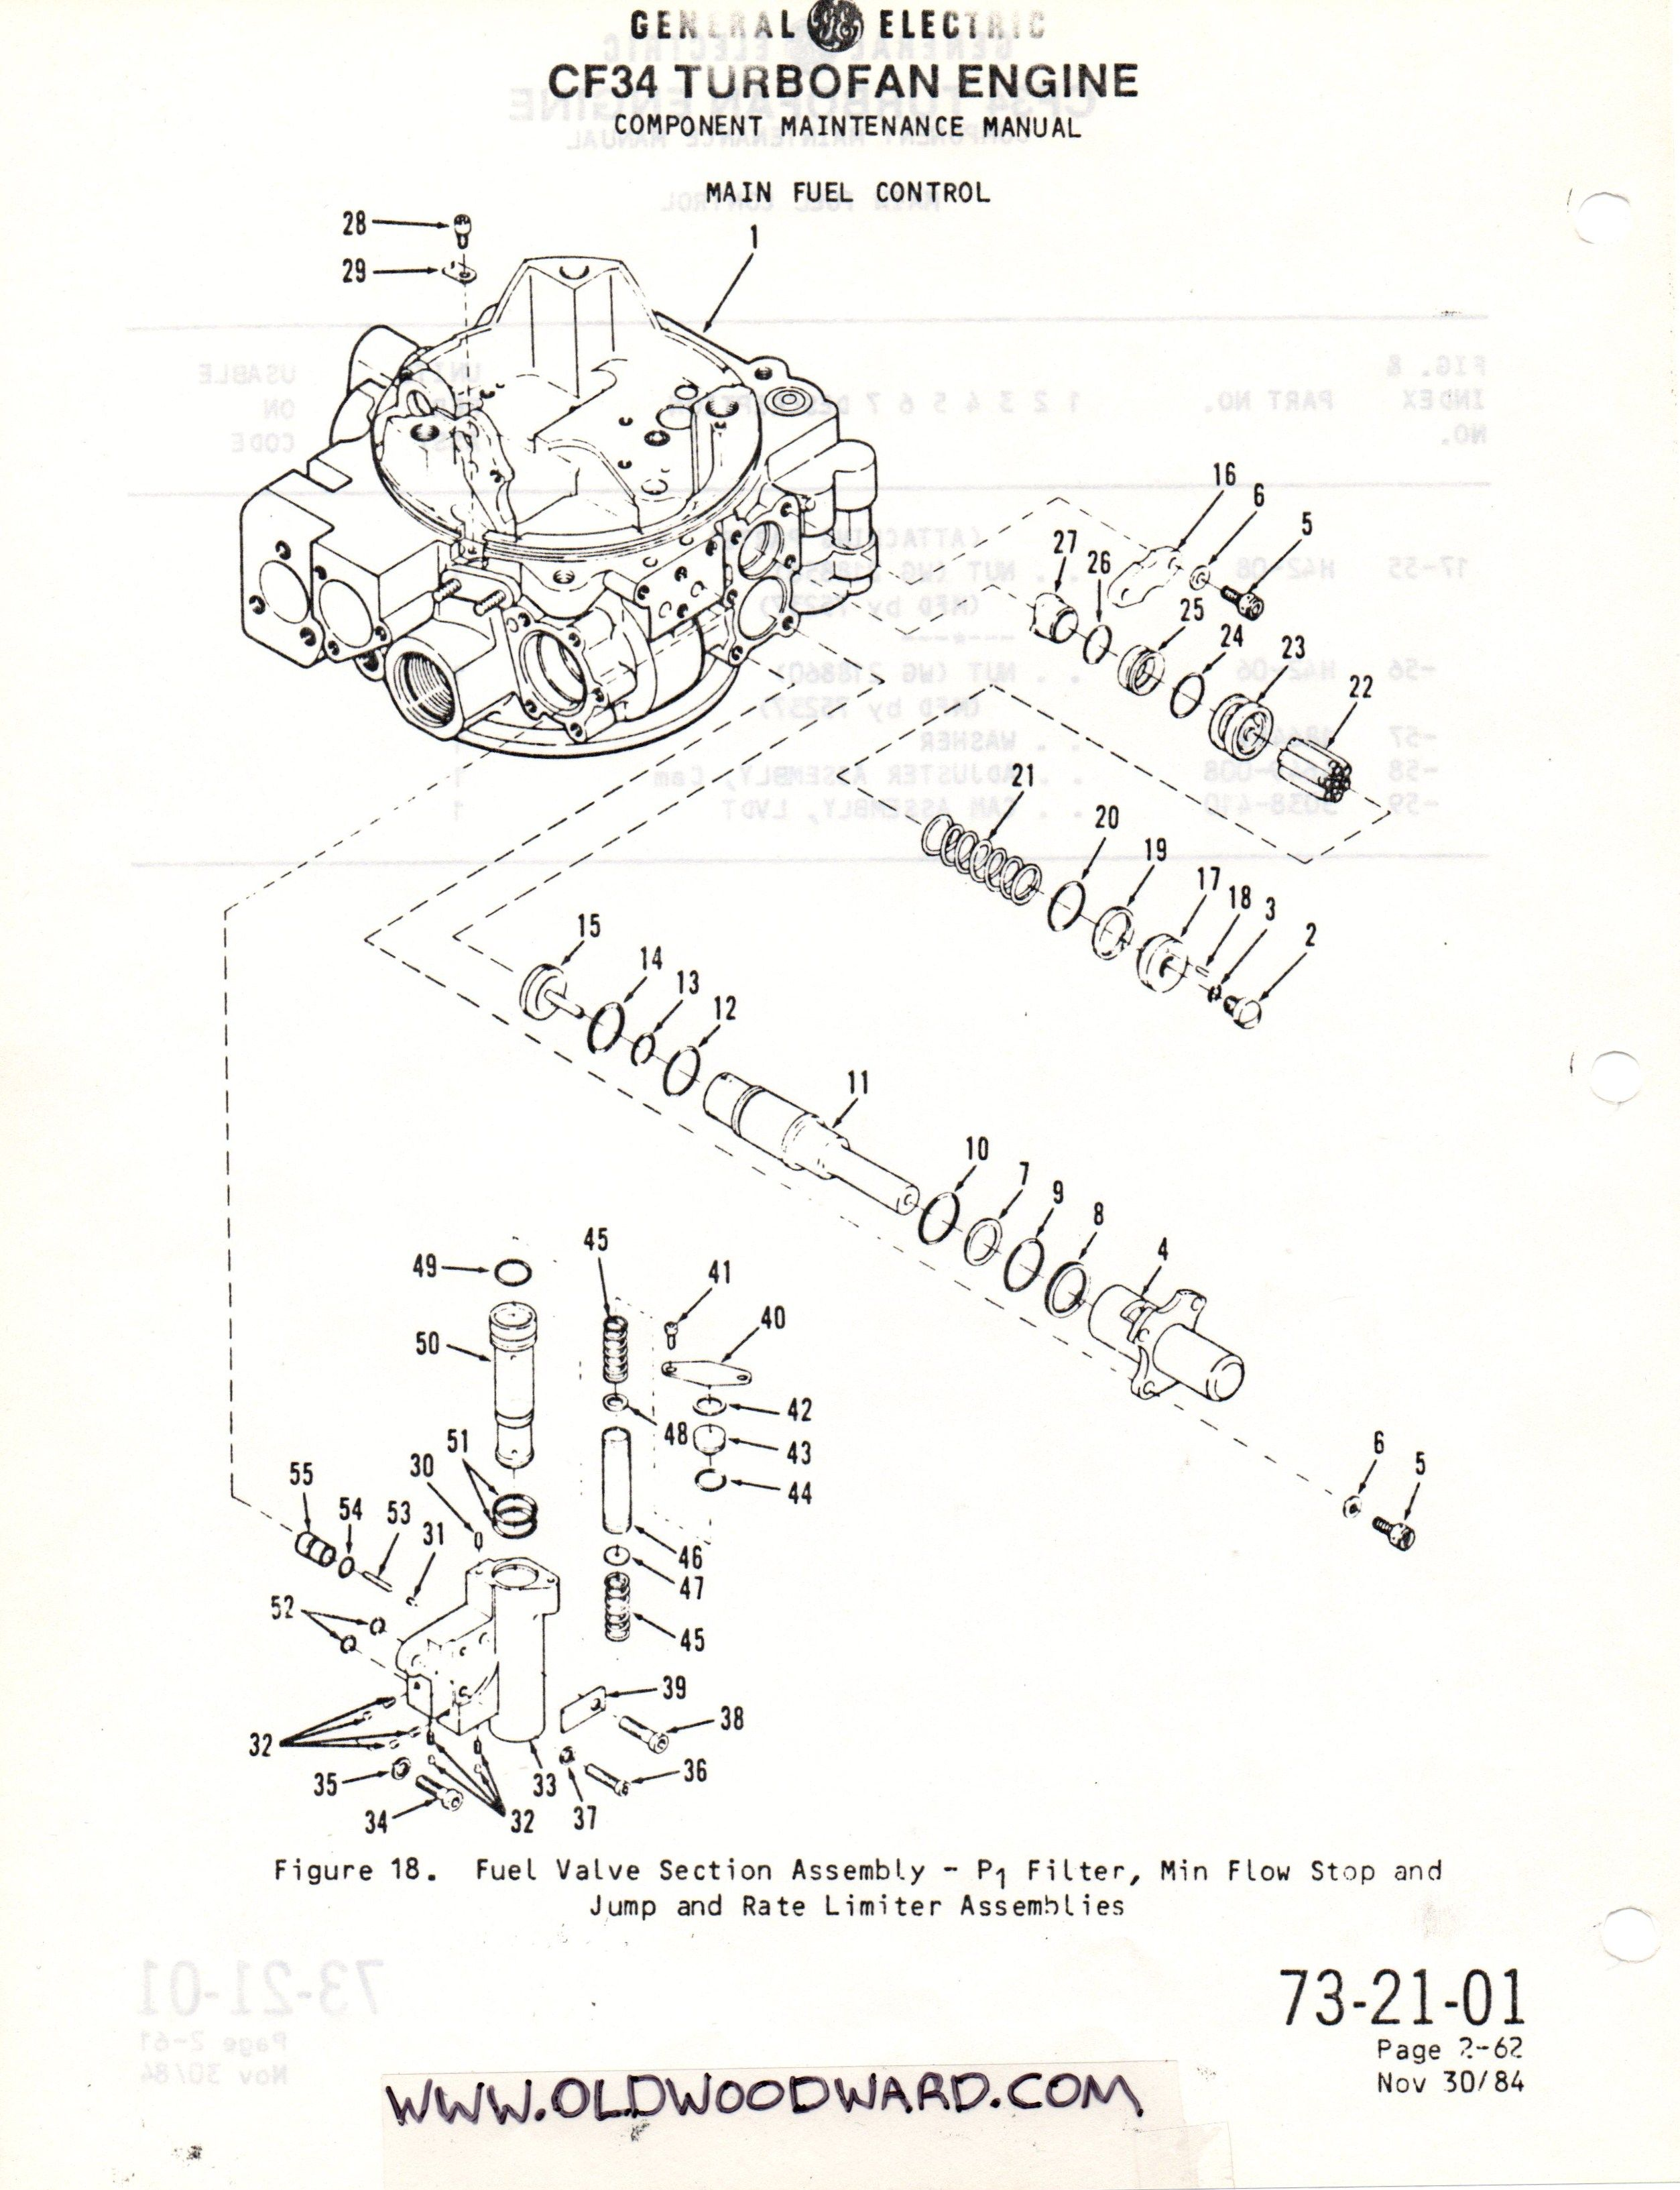 woodward governor company main engine control component training manual schematic drawing woodward governor  [ 2506 x 3266 Pixel ]